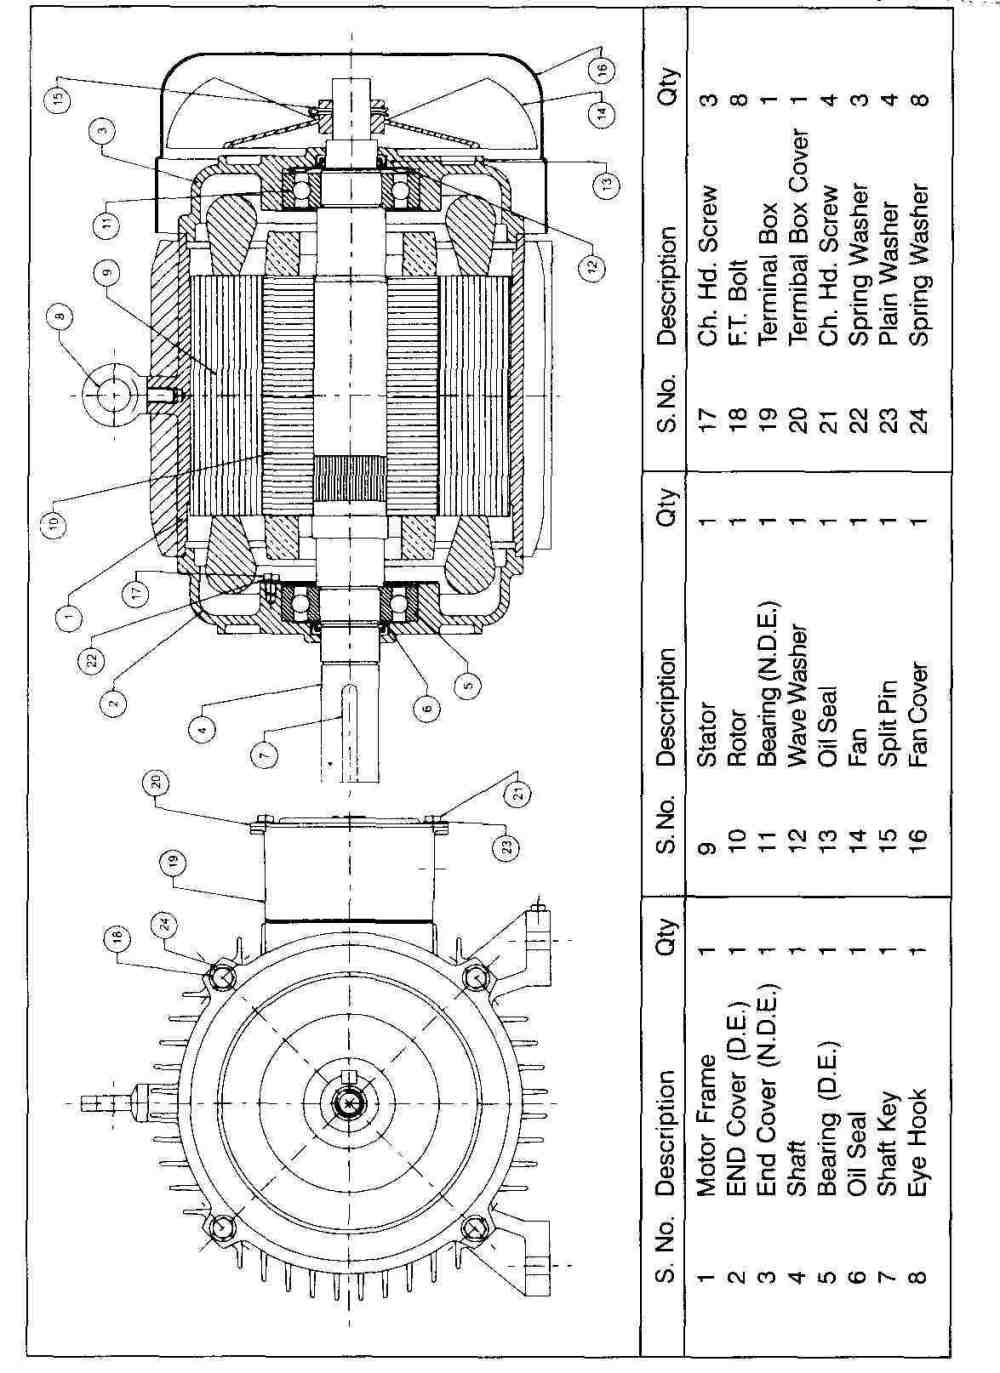 medium resolution of general assembly drawing and spares list motor manufacturing companies in india induction motor three phase motor squirrel cage induction motor